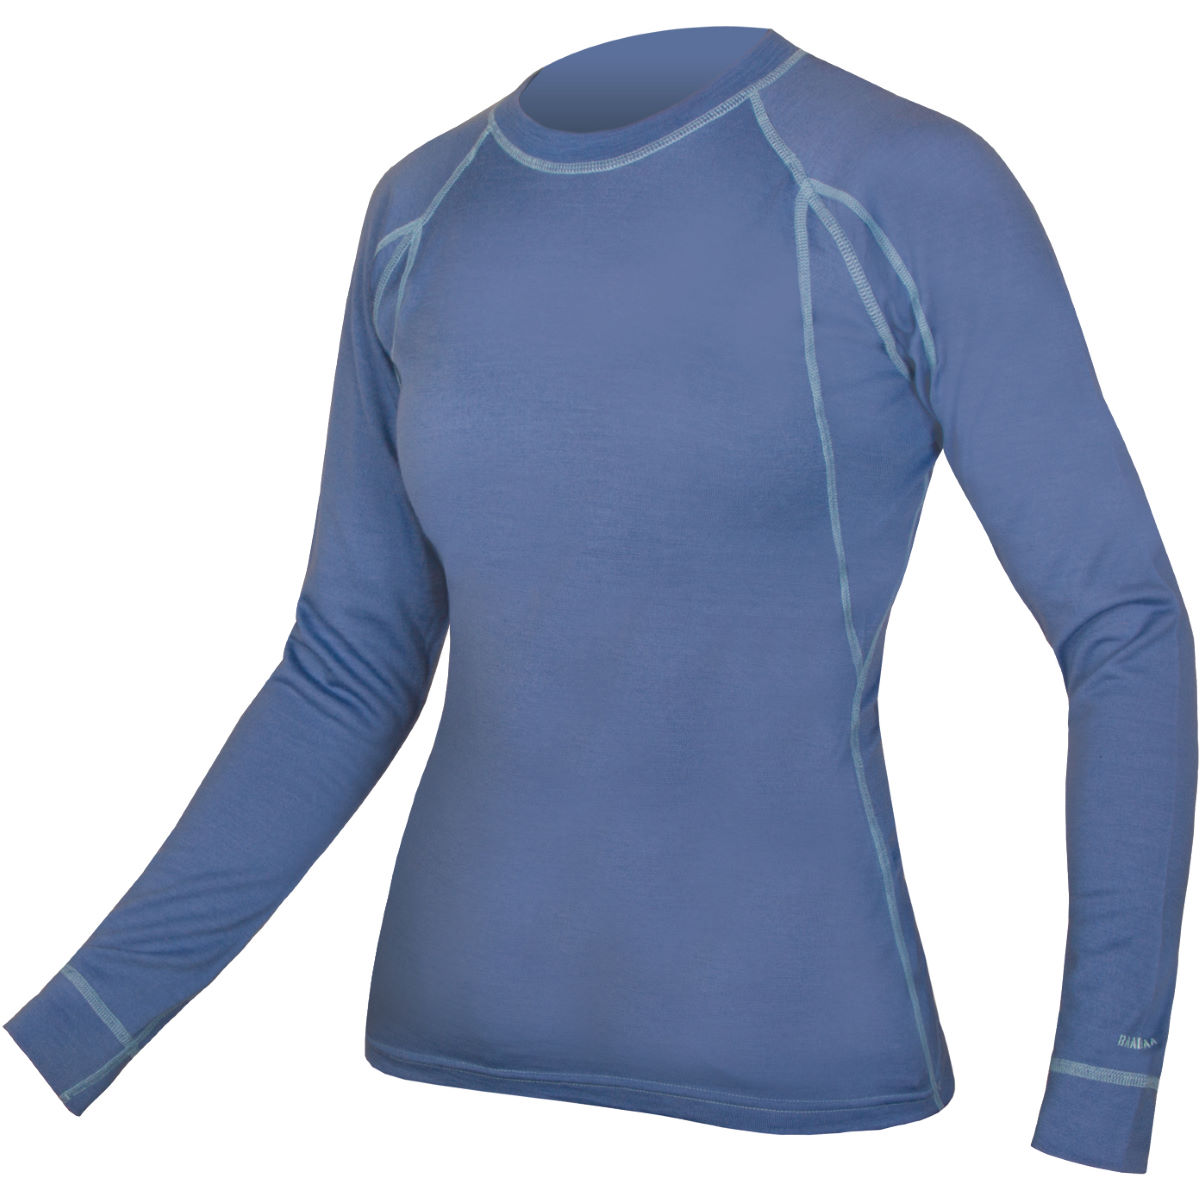 Maillot de corps Femme Endura BaaBaa Merino (manches longues) - XS